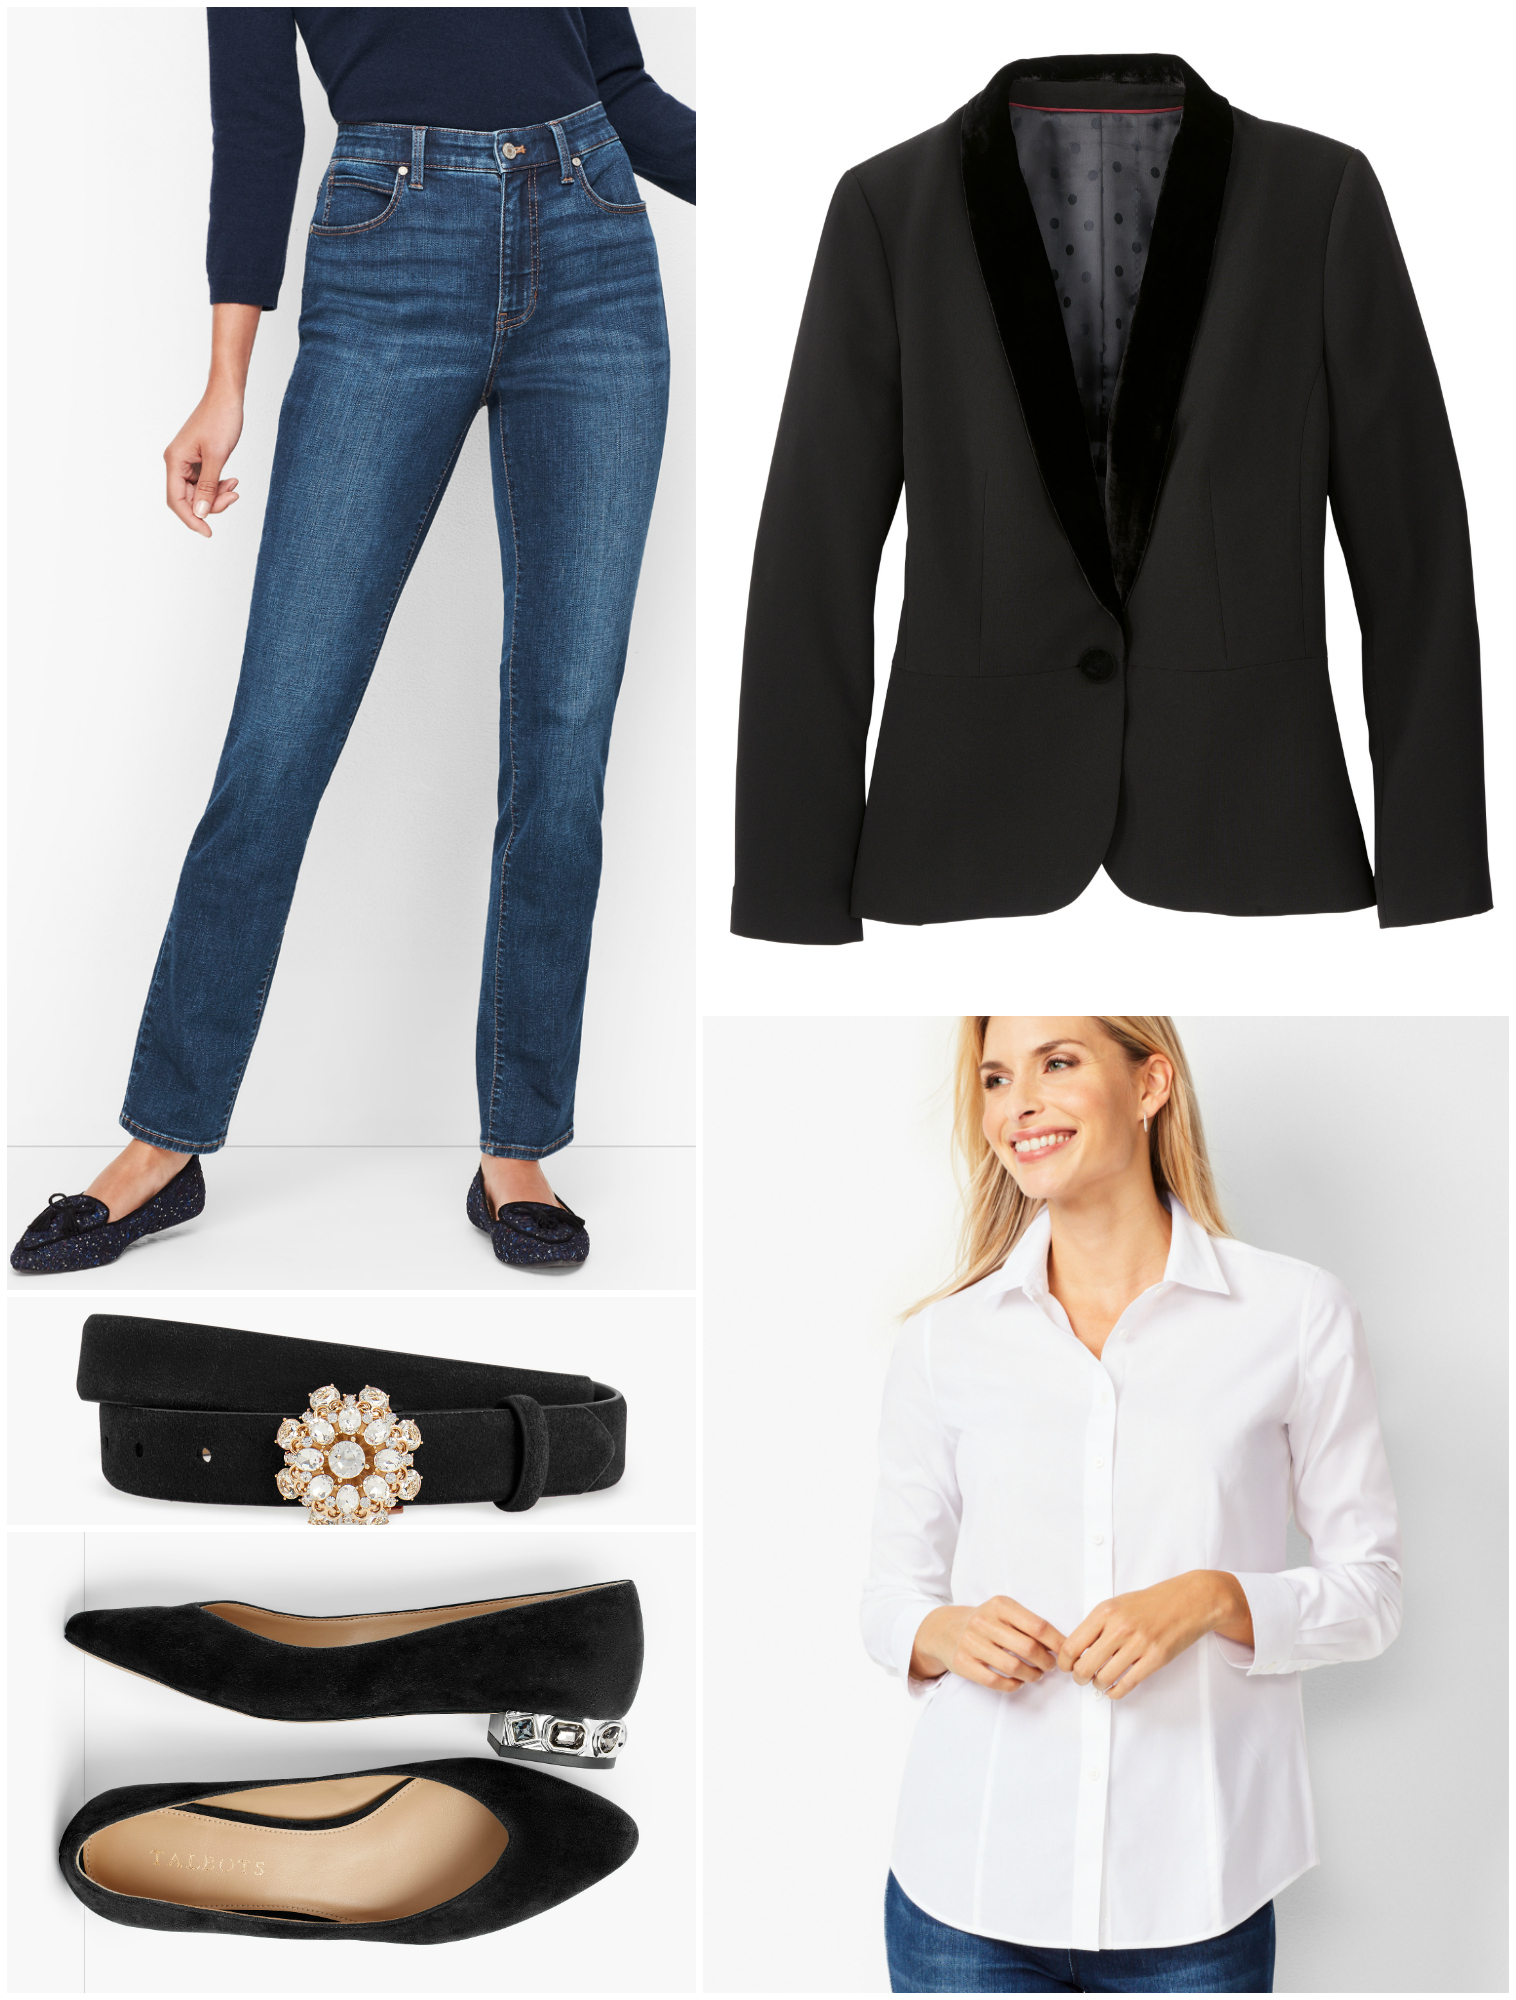 Jeans are a great piece for any capsule wardrobe, even one for the holidays.  It tones down a tuxedo jacket to feel just right for a company holiday happy hour or cocktails at a neighbor's home.